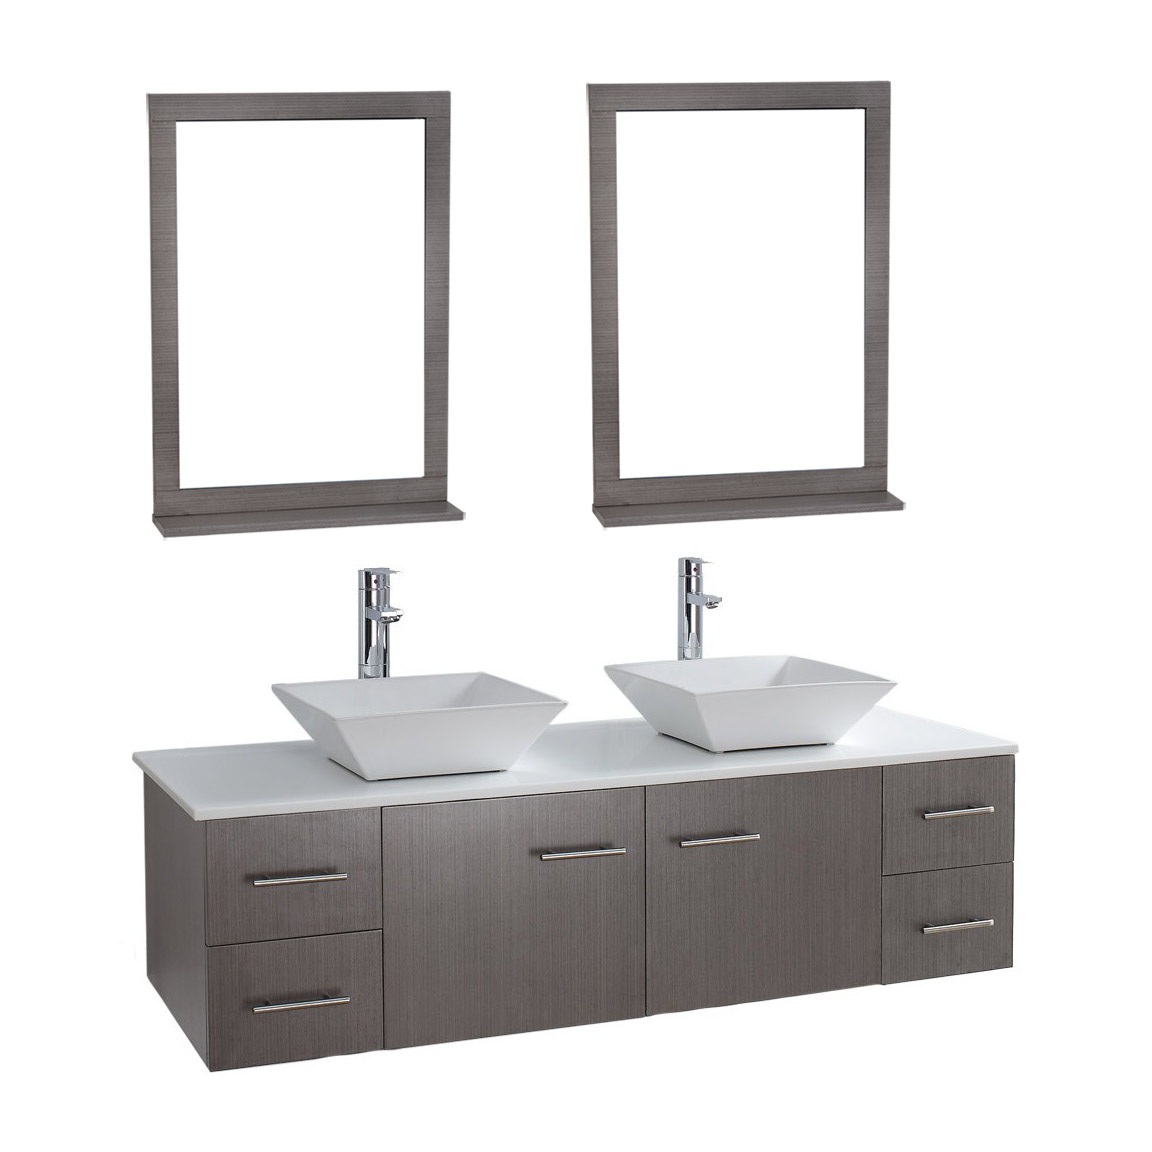 "Wall Mount Vanity Mirror siena solid wood 71"" wall-mounted double bathroom vanity mirror"